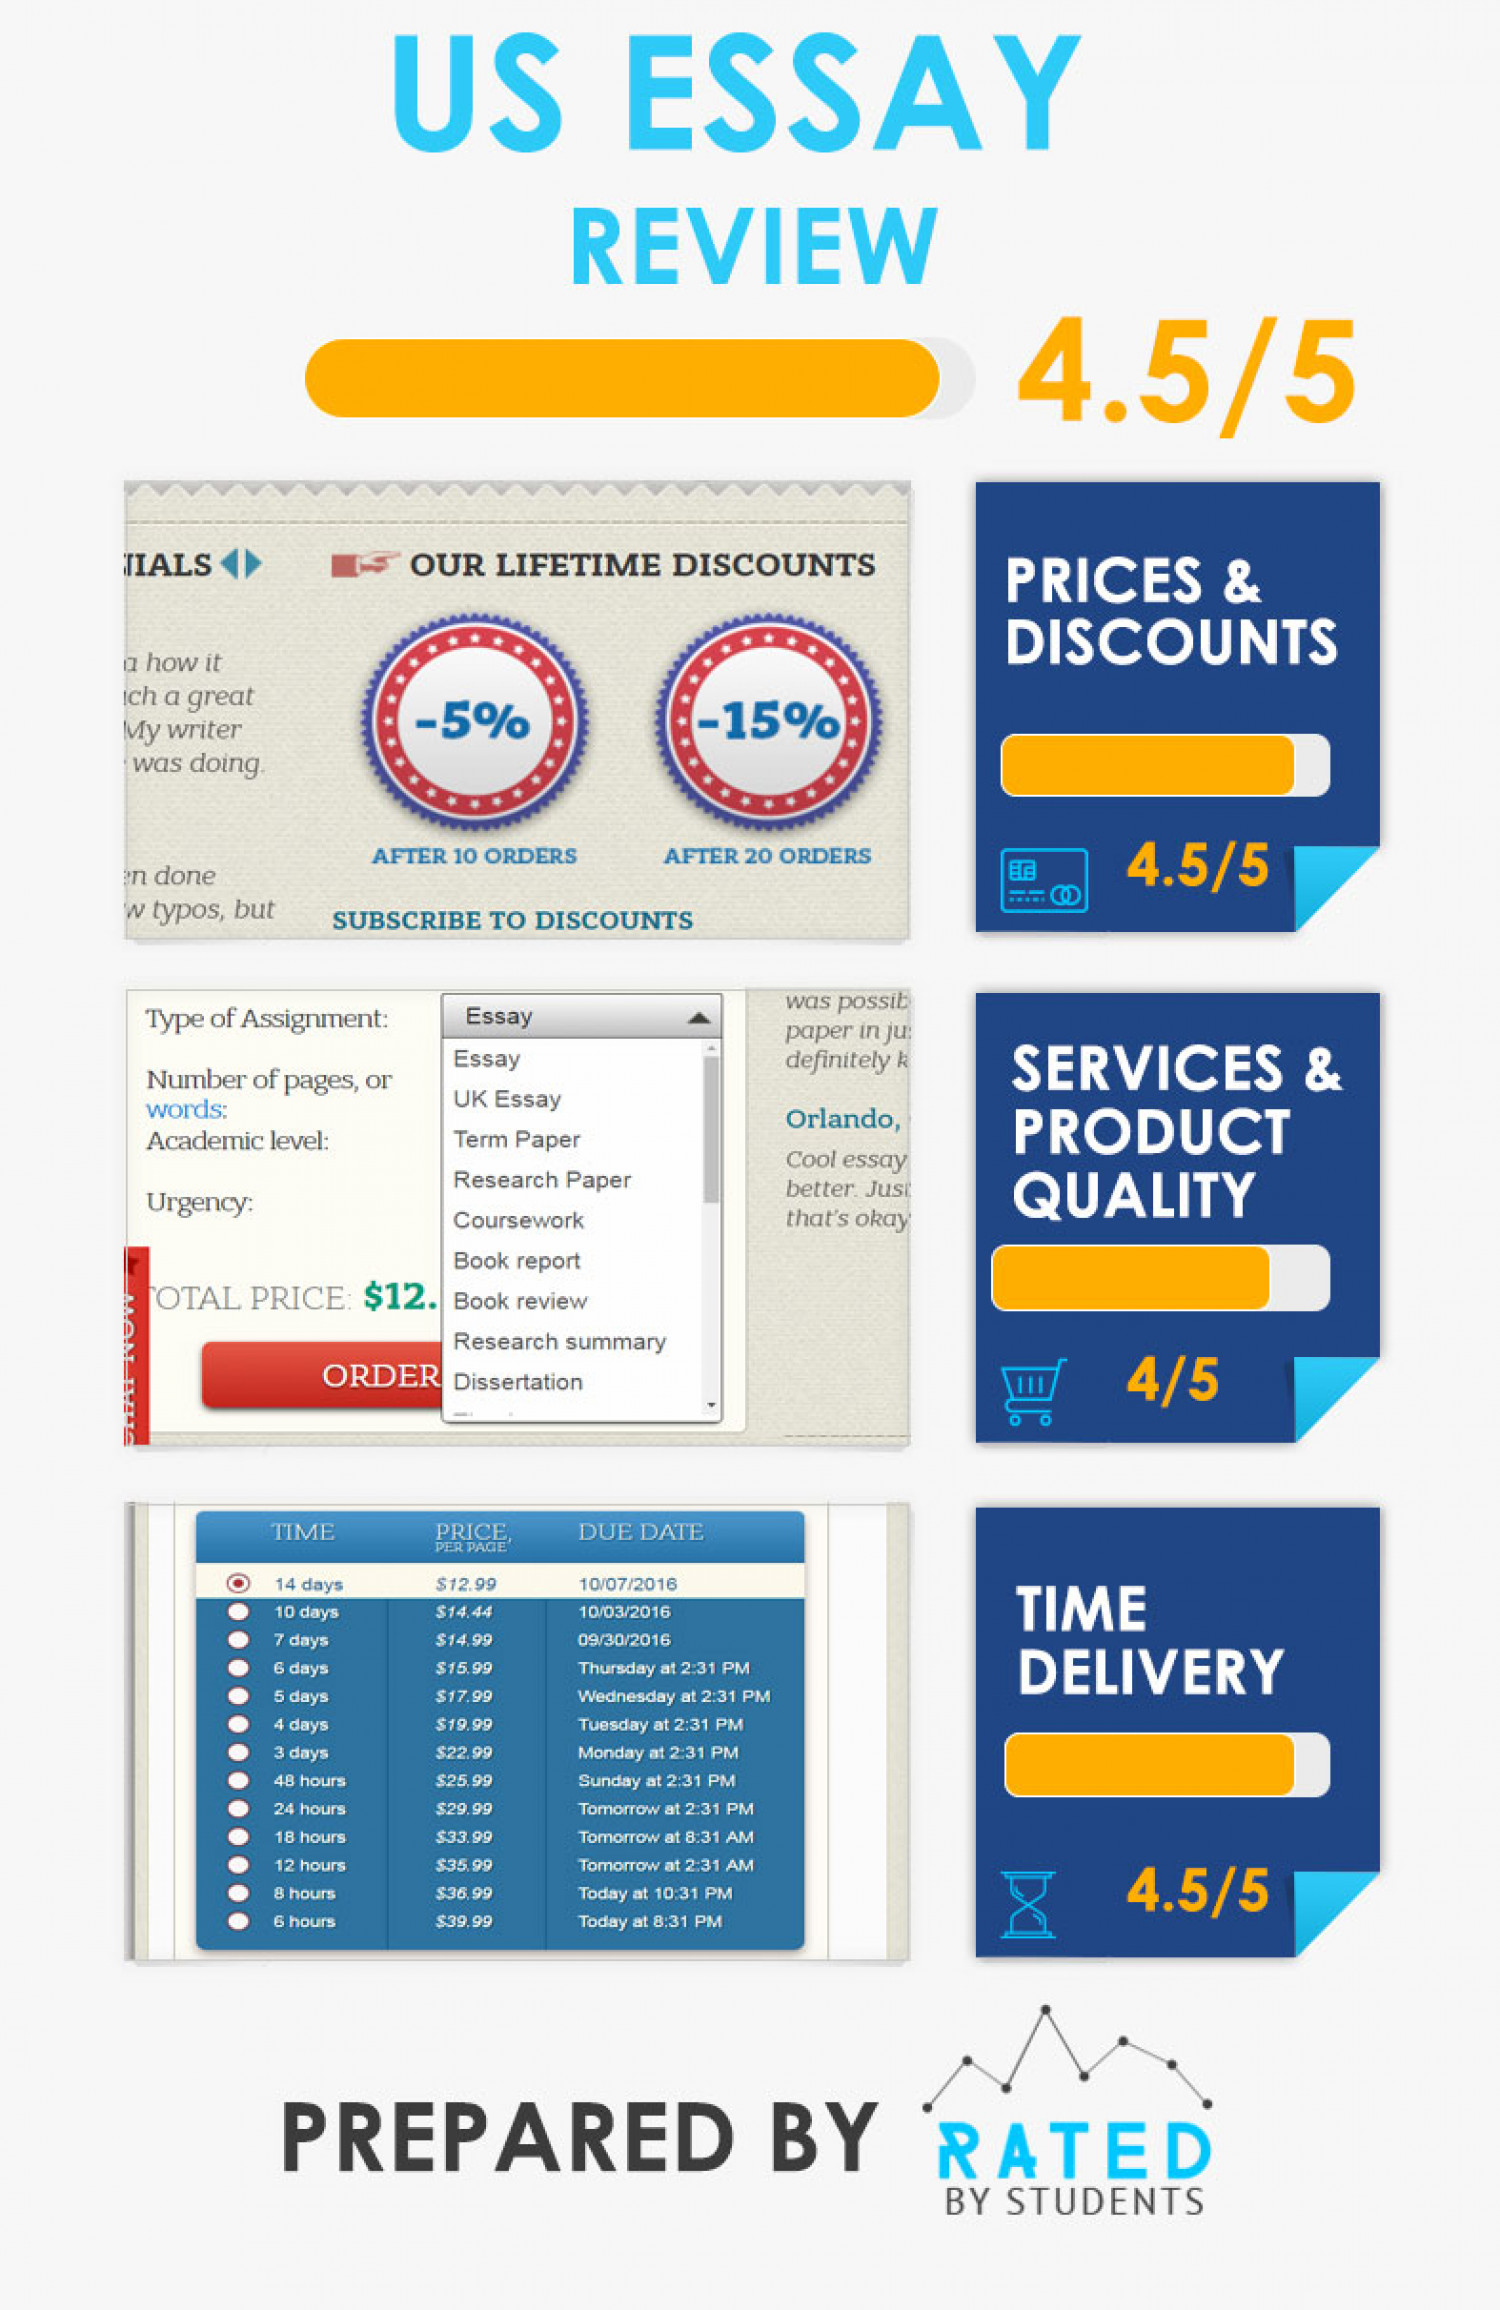 What we can say about prices and services of US Essay writing company Infographic